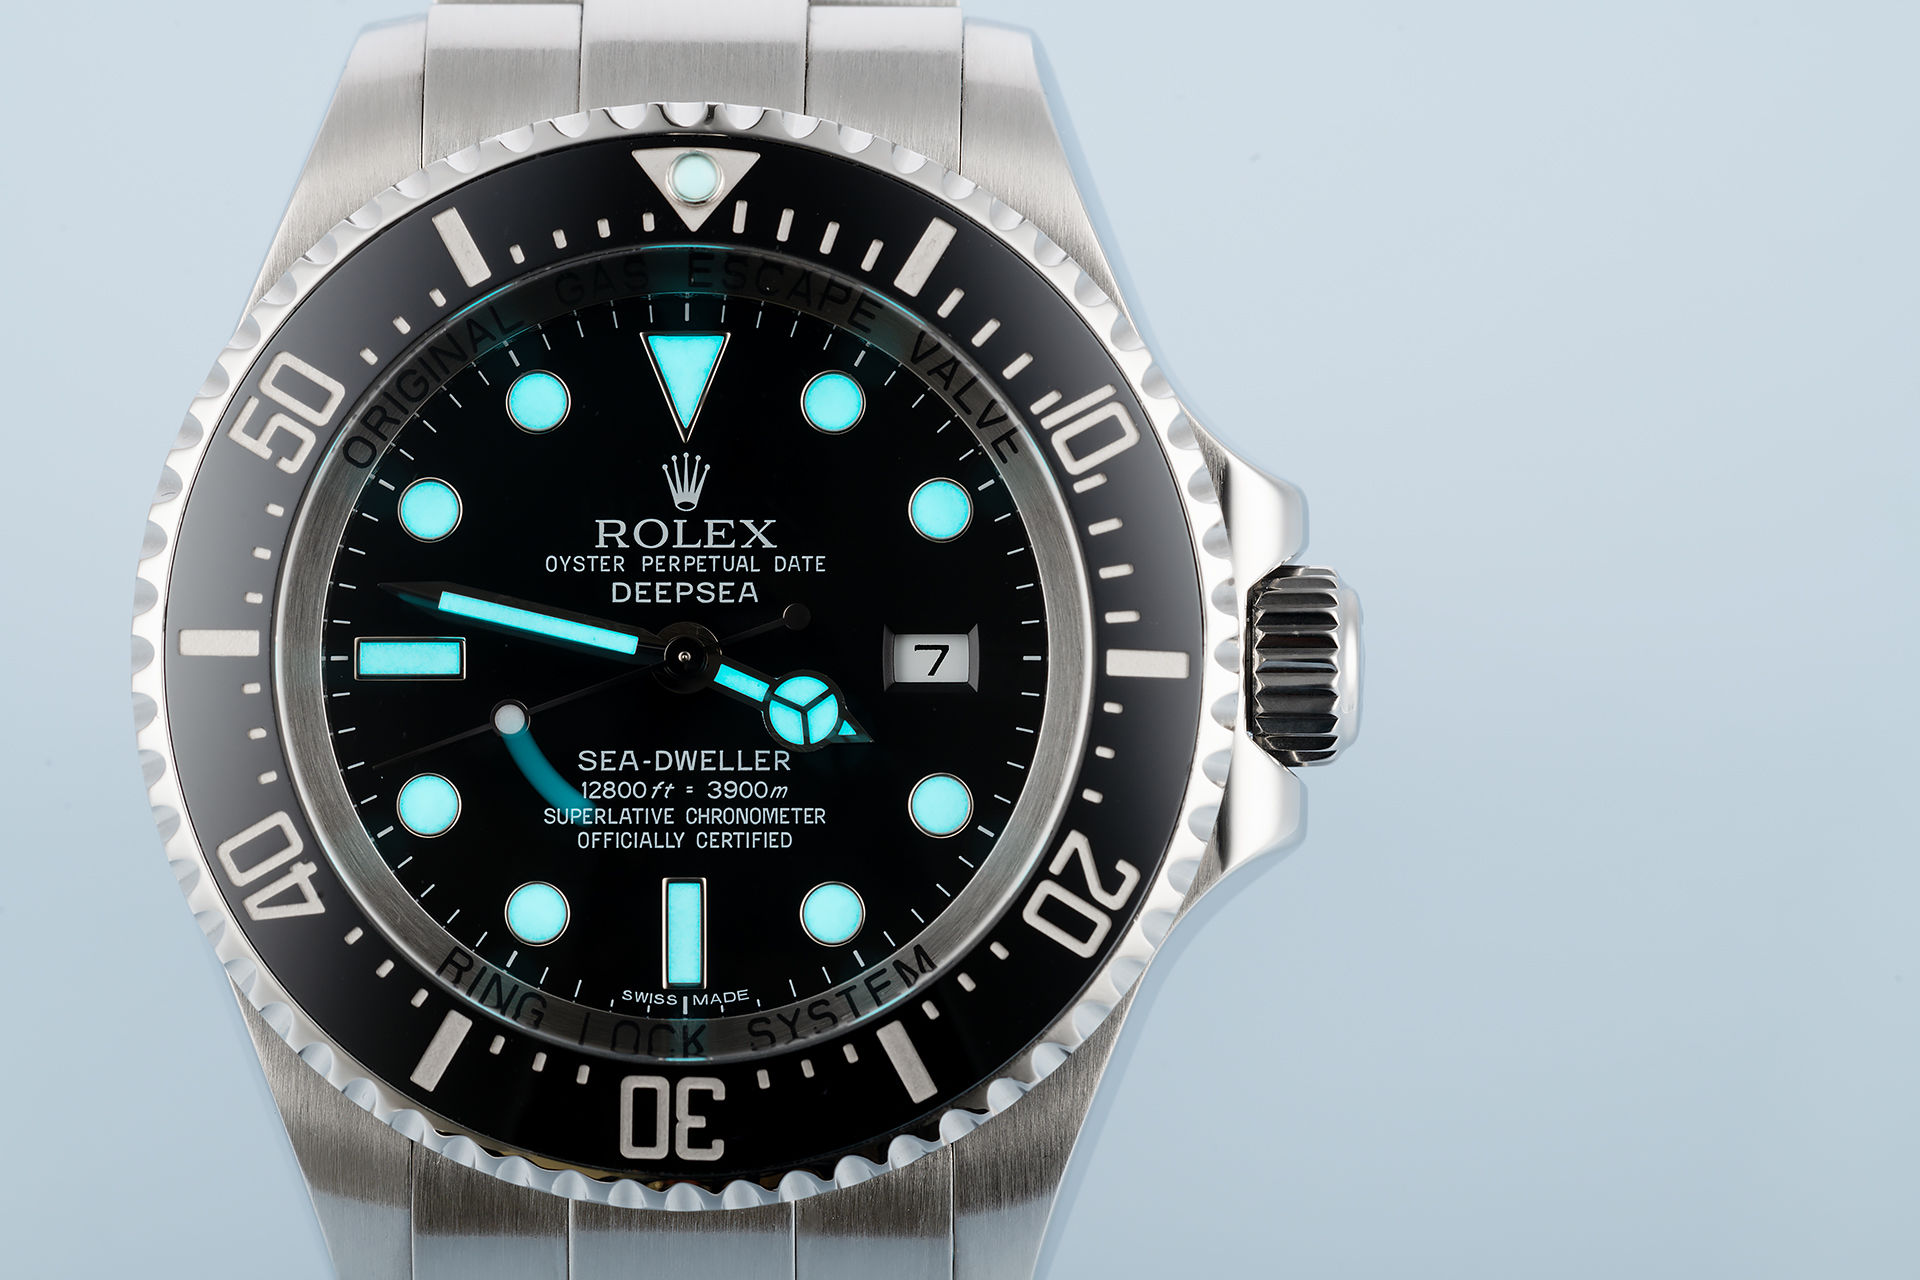 ref 116660 | Complete Set with Rolex Warranty | Rolex Sea-Dweller Deepsea